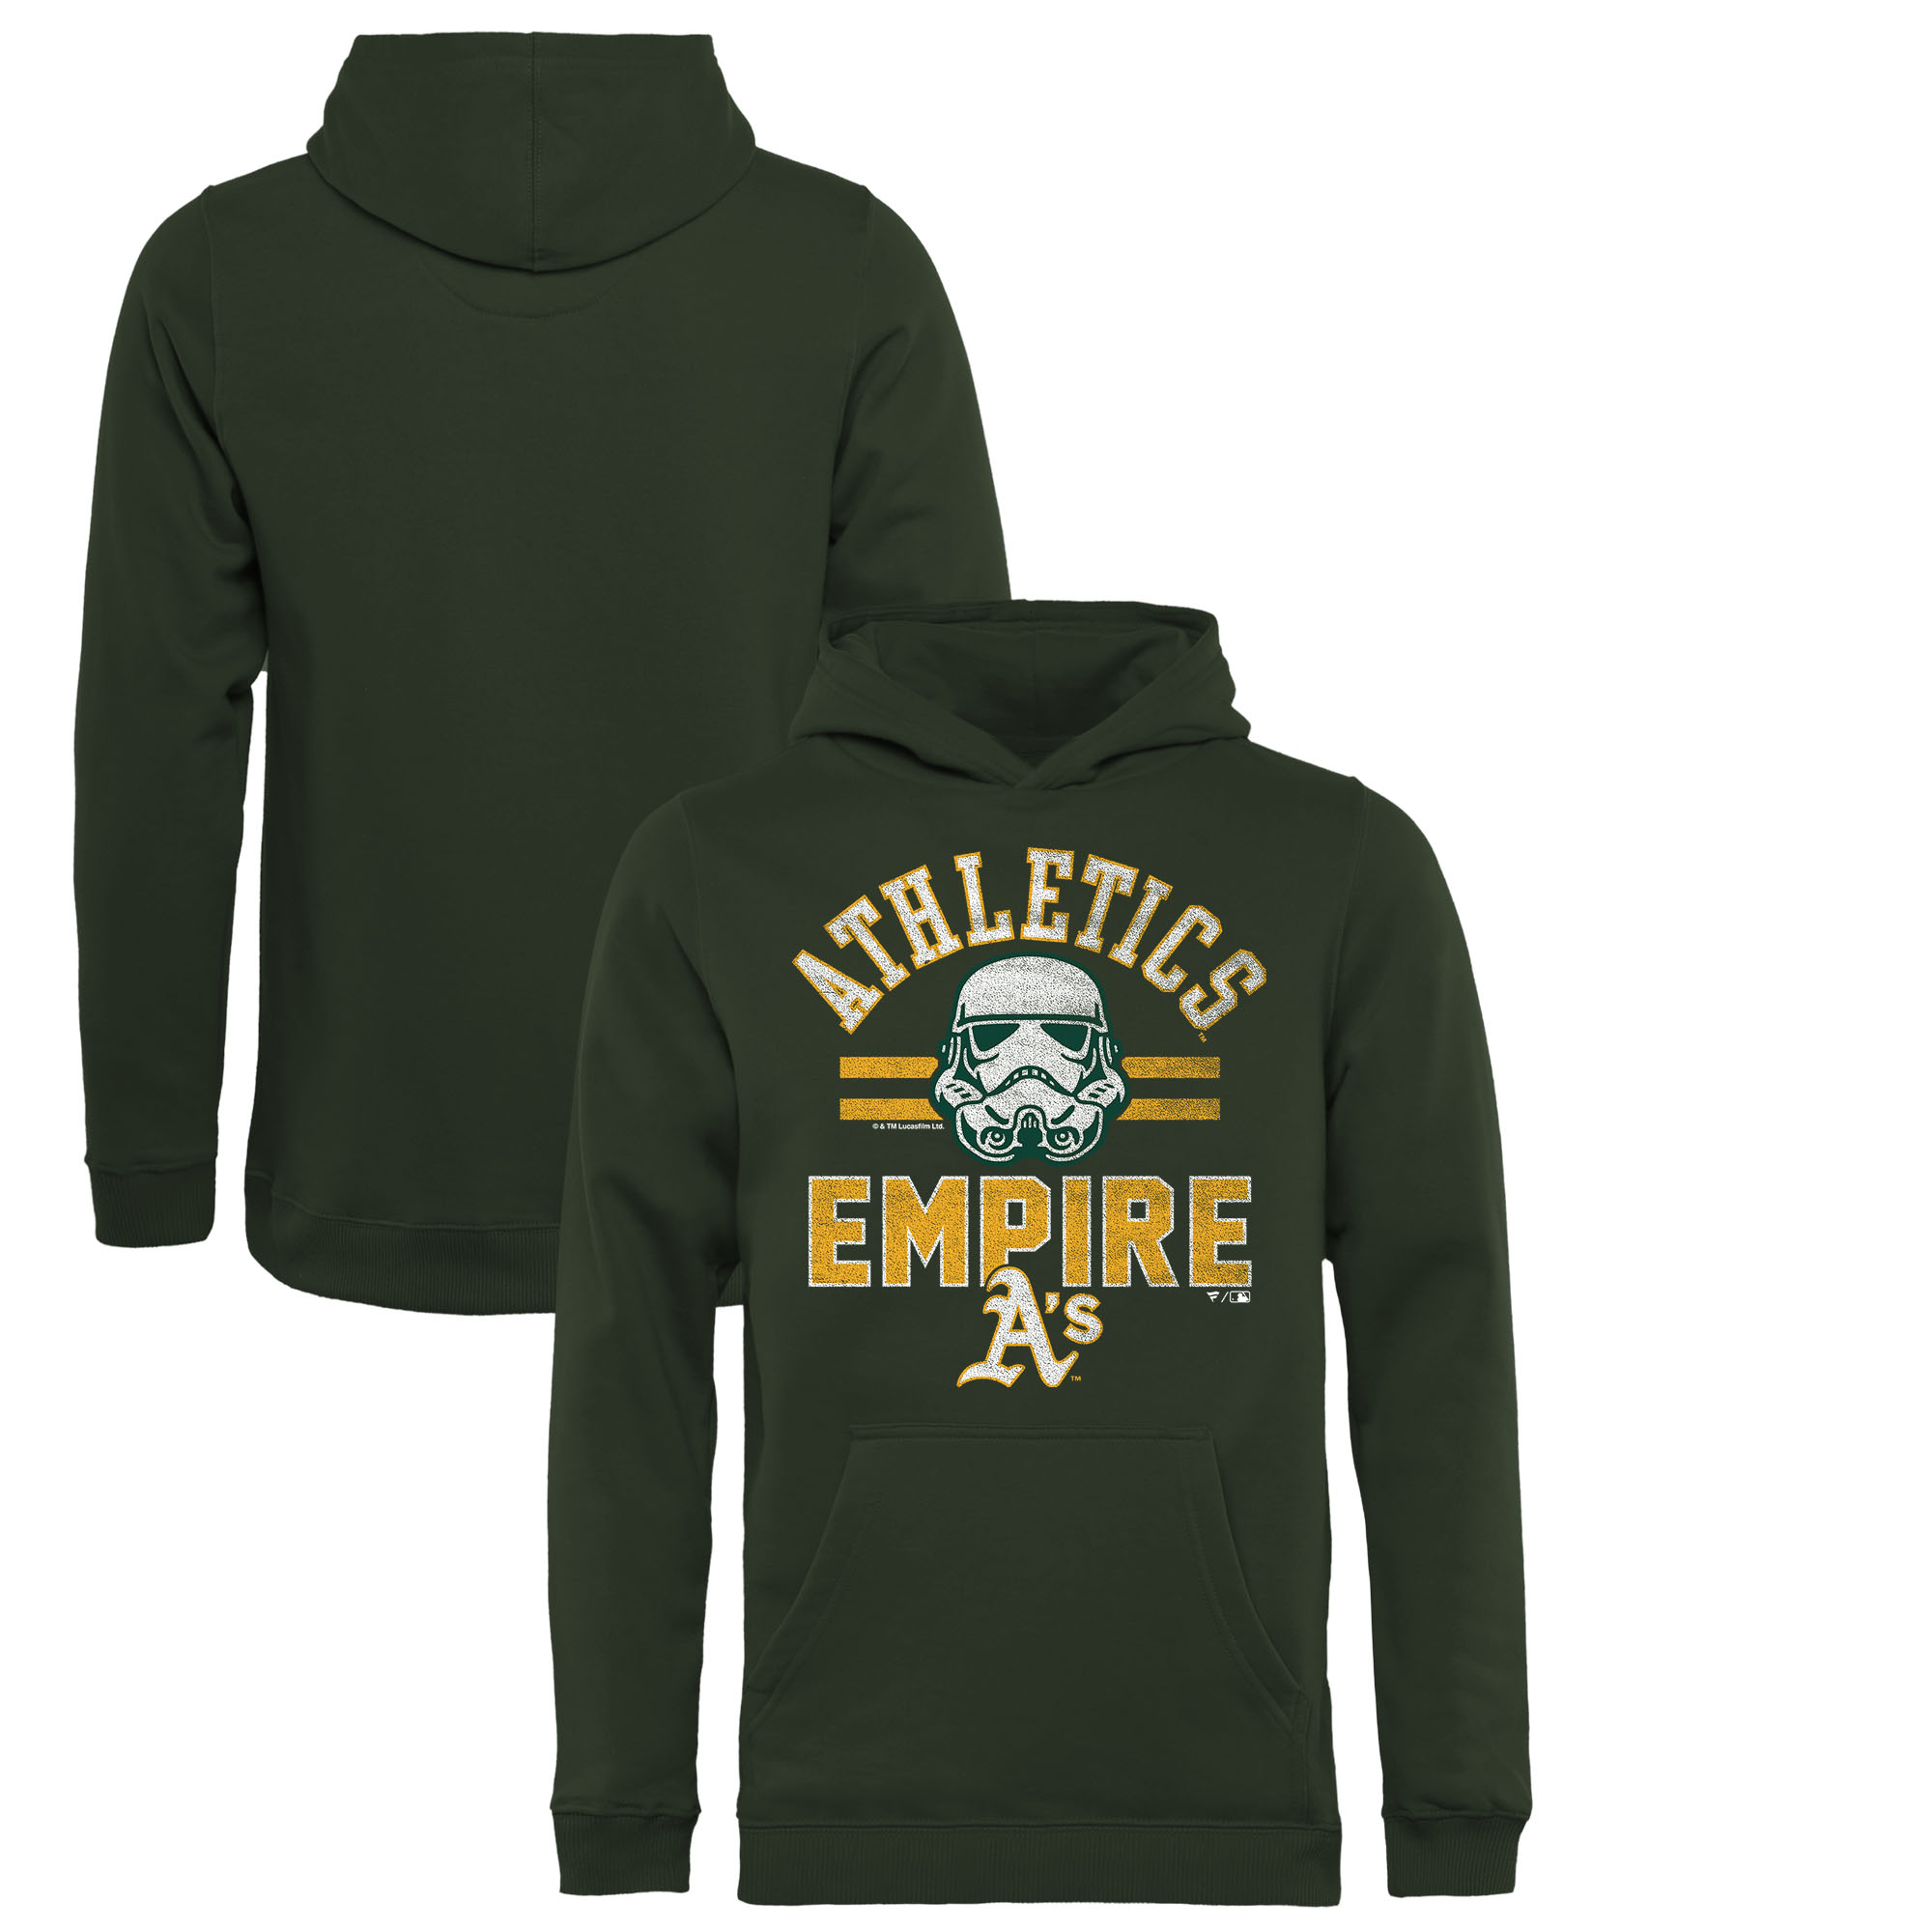 Oakland Athletics Fanatics Branded Youth MLB Star Wars Empire Pullover Hoodie - Green